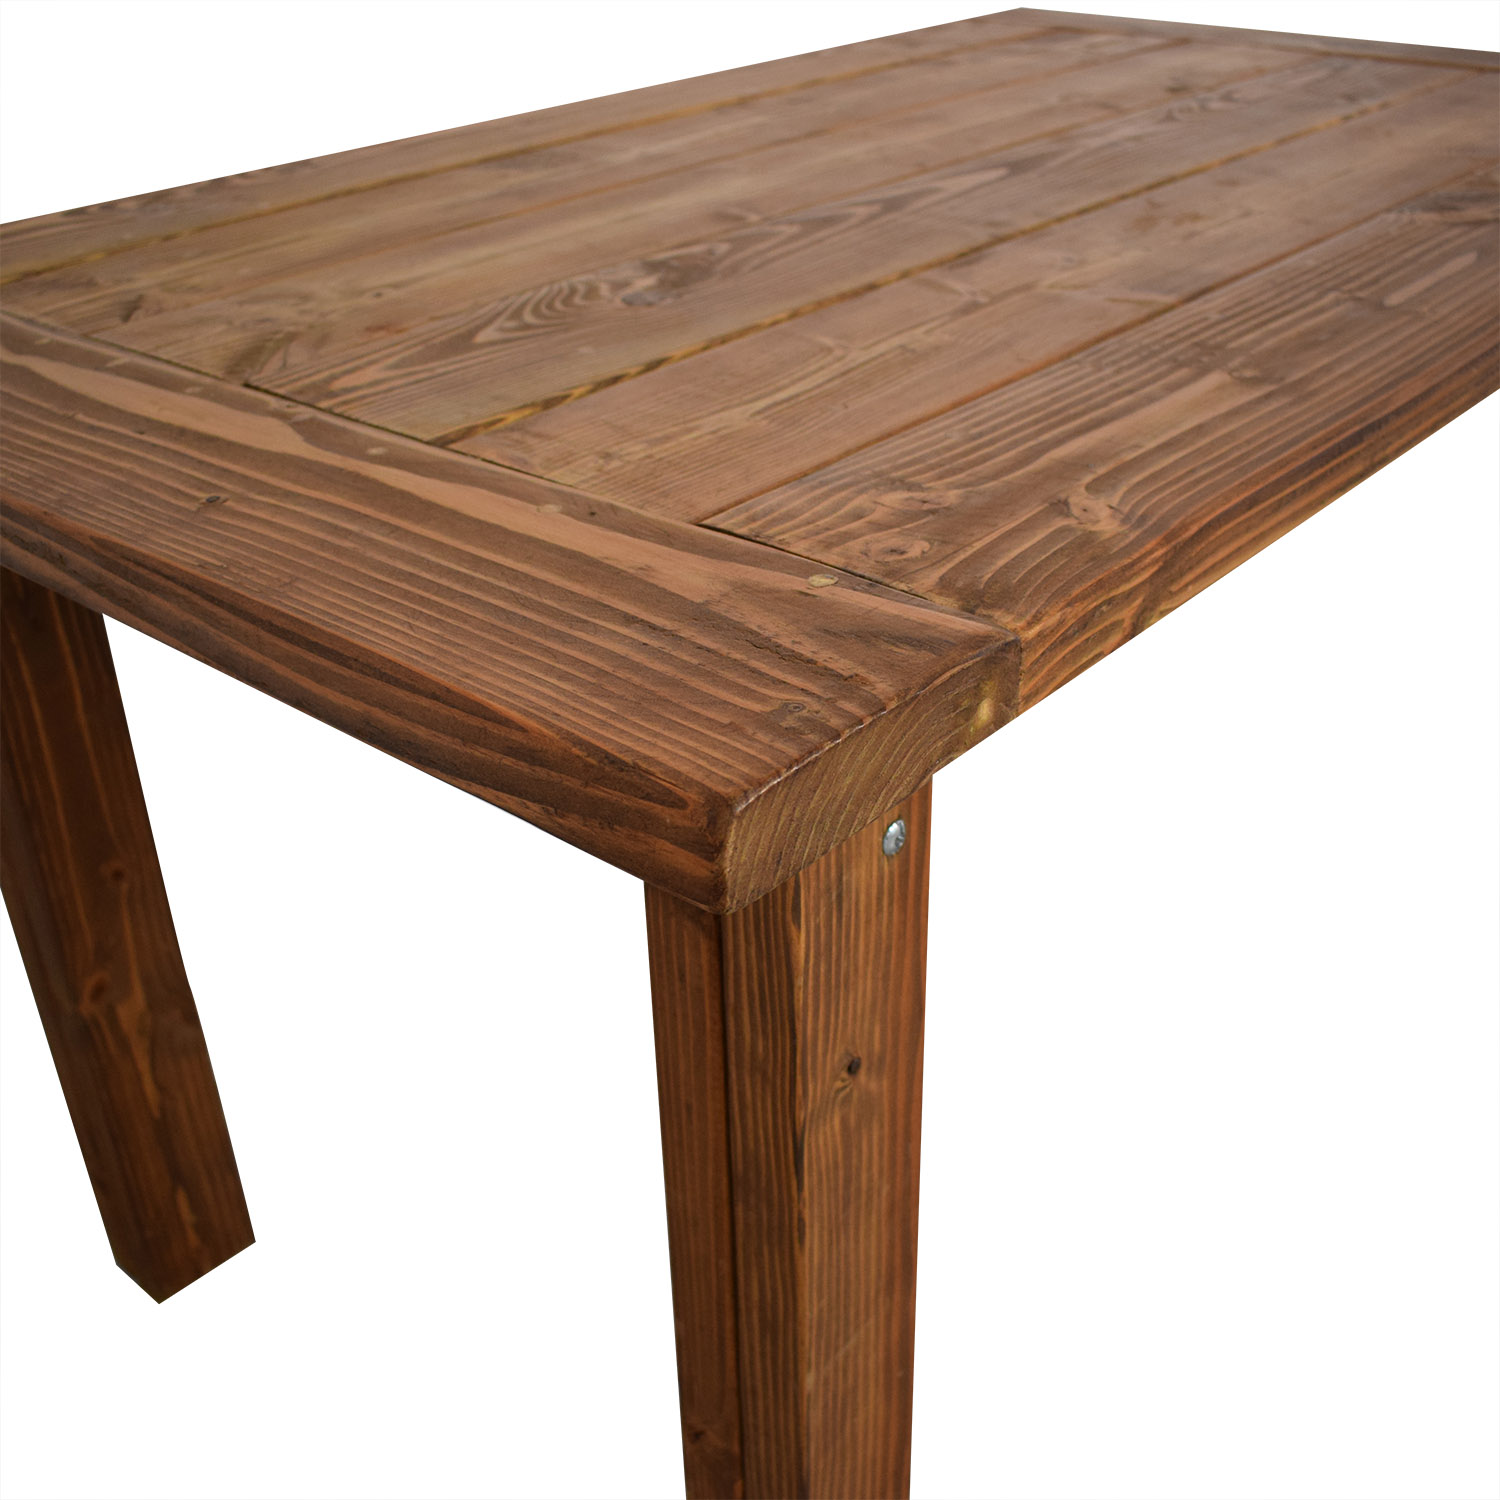 72% OFF - Custom Dining Table / Tables